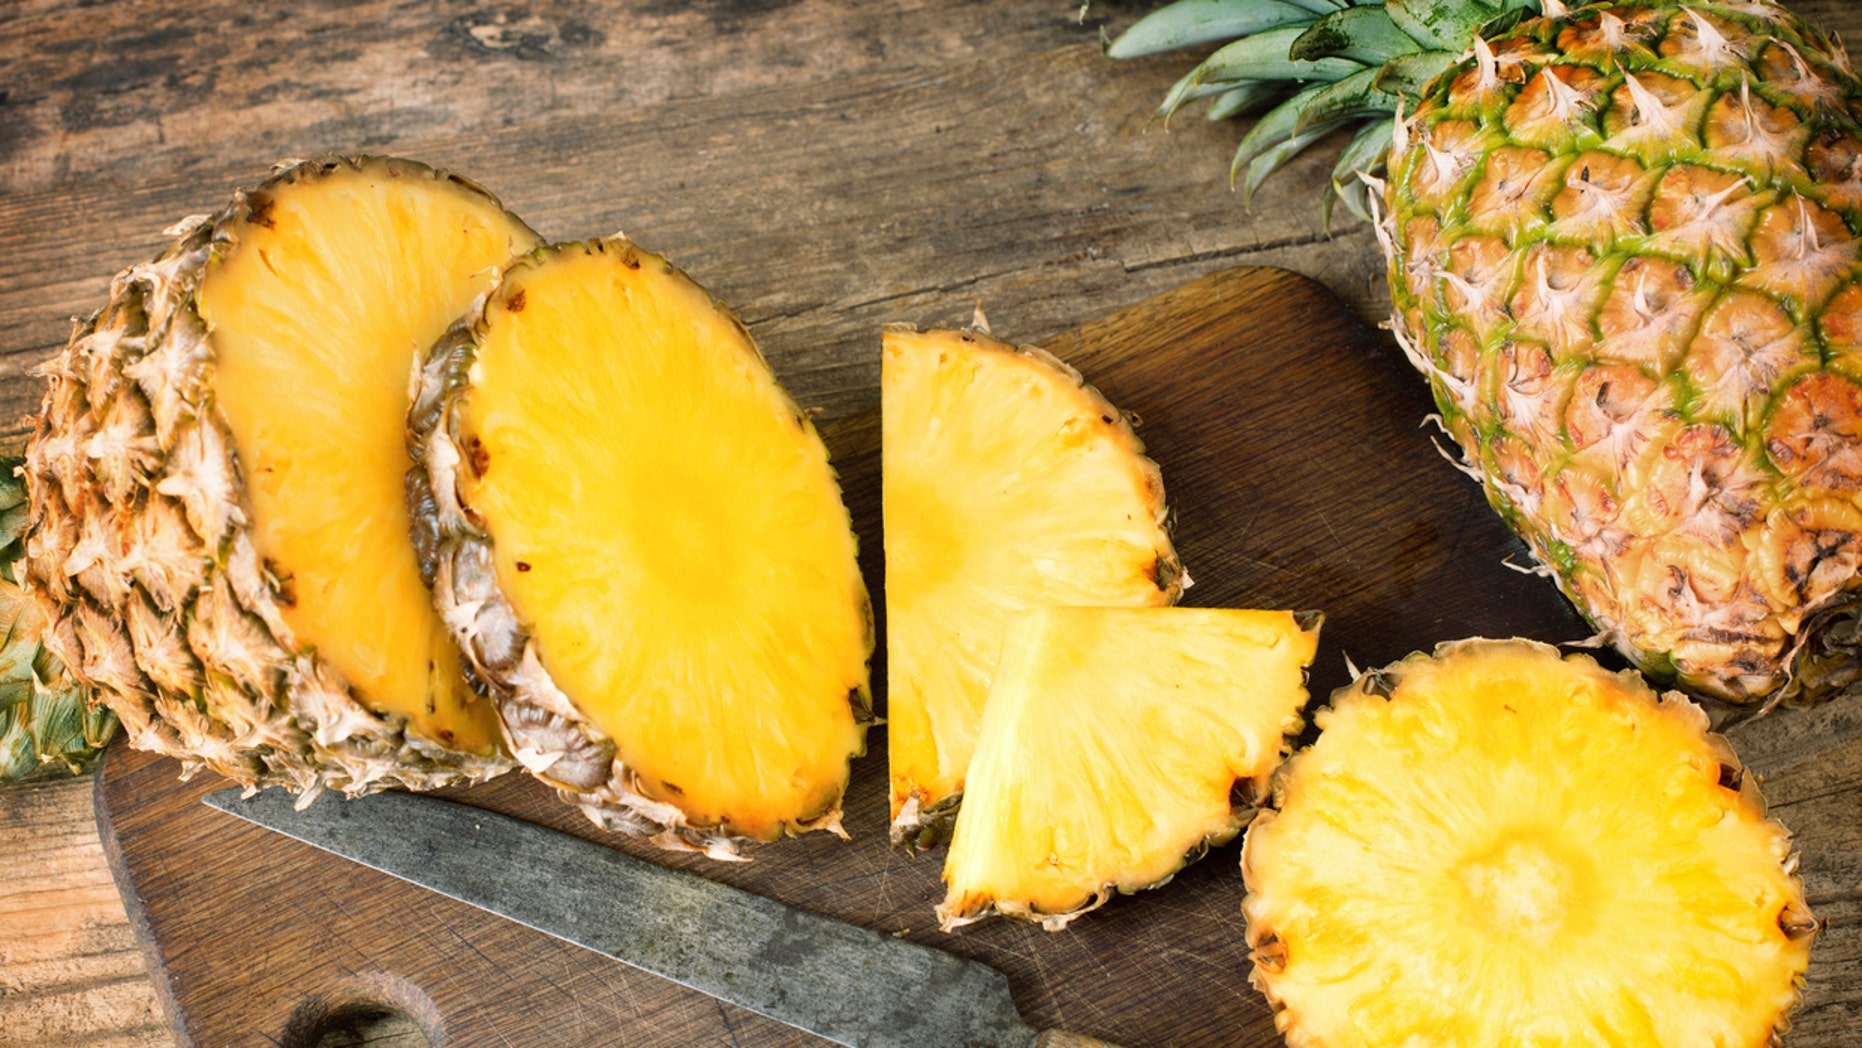 Before we even get to chopping, you'll wish to make certain we collect a ideal pineapple.